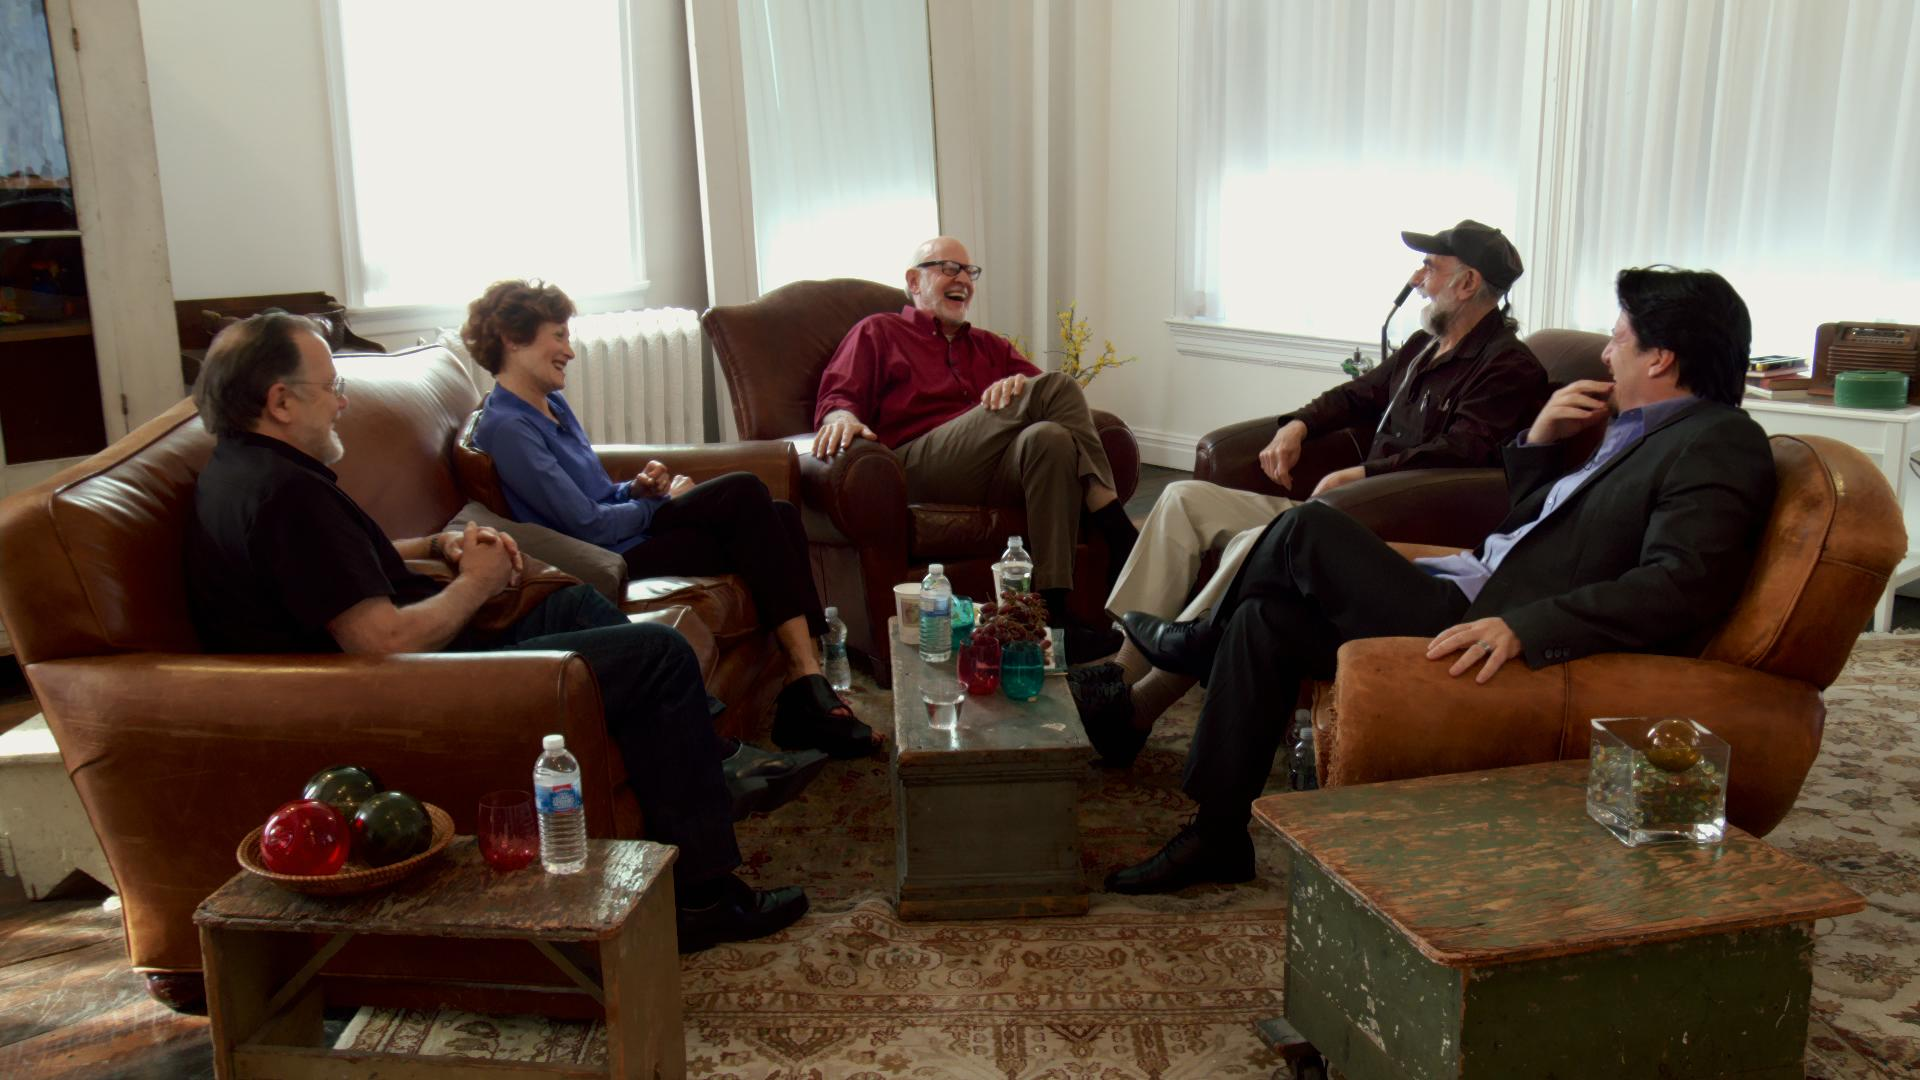 Dave Goelz, Fran Brill, Frank Oz, Jerry Nelson and Bill Barretta in 'Muppet Guys Talking' (Photo: Vibrant Mud LLC)